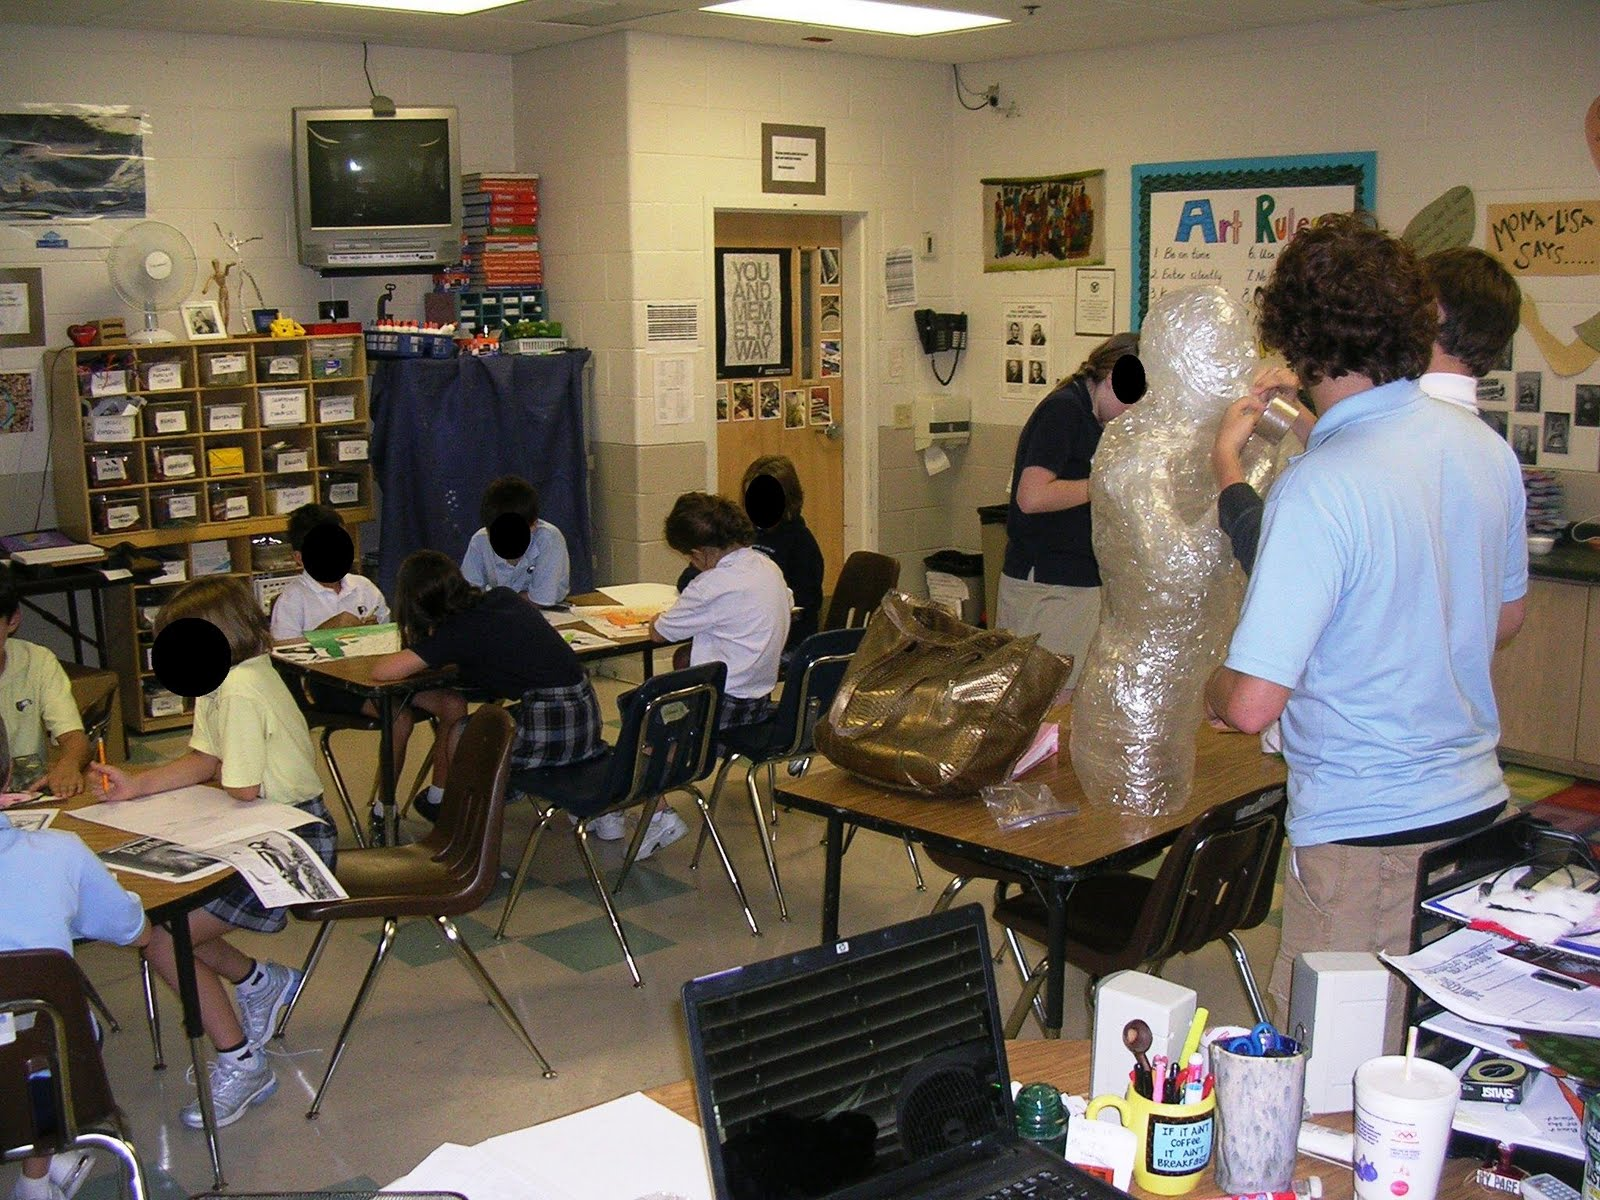 High School Art Classroom Design ~ Dispensing materials and clean up in the middle school art